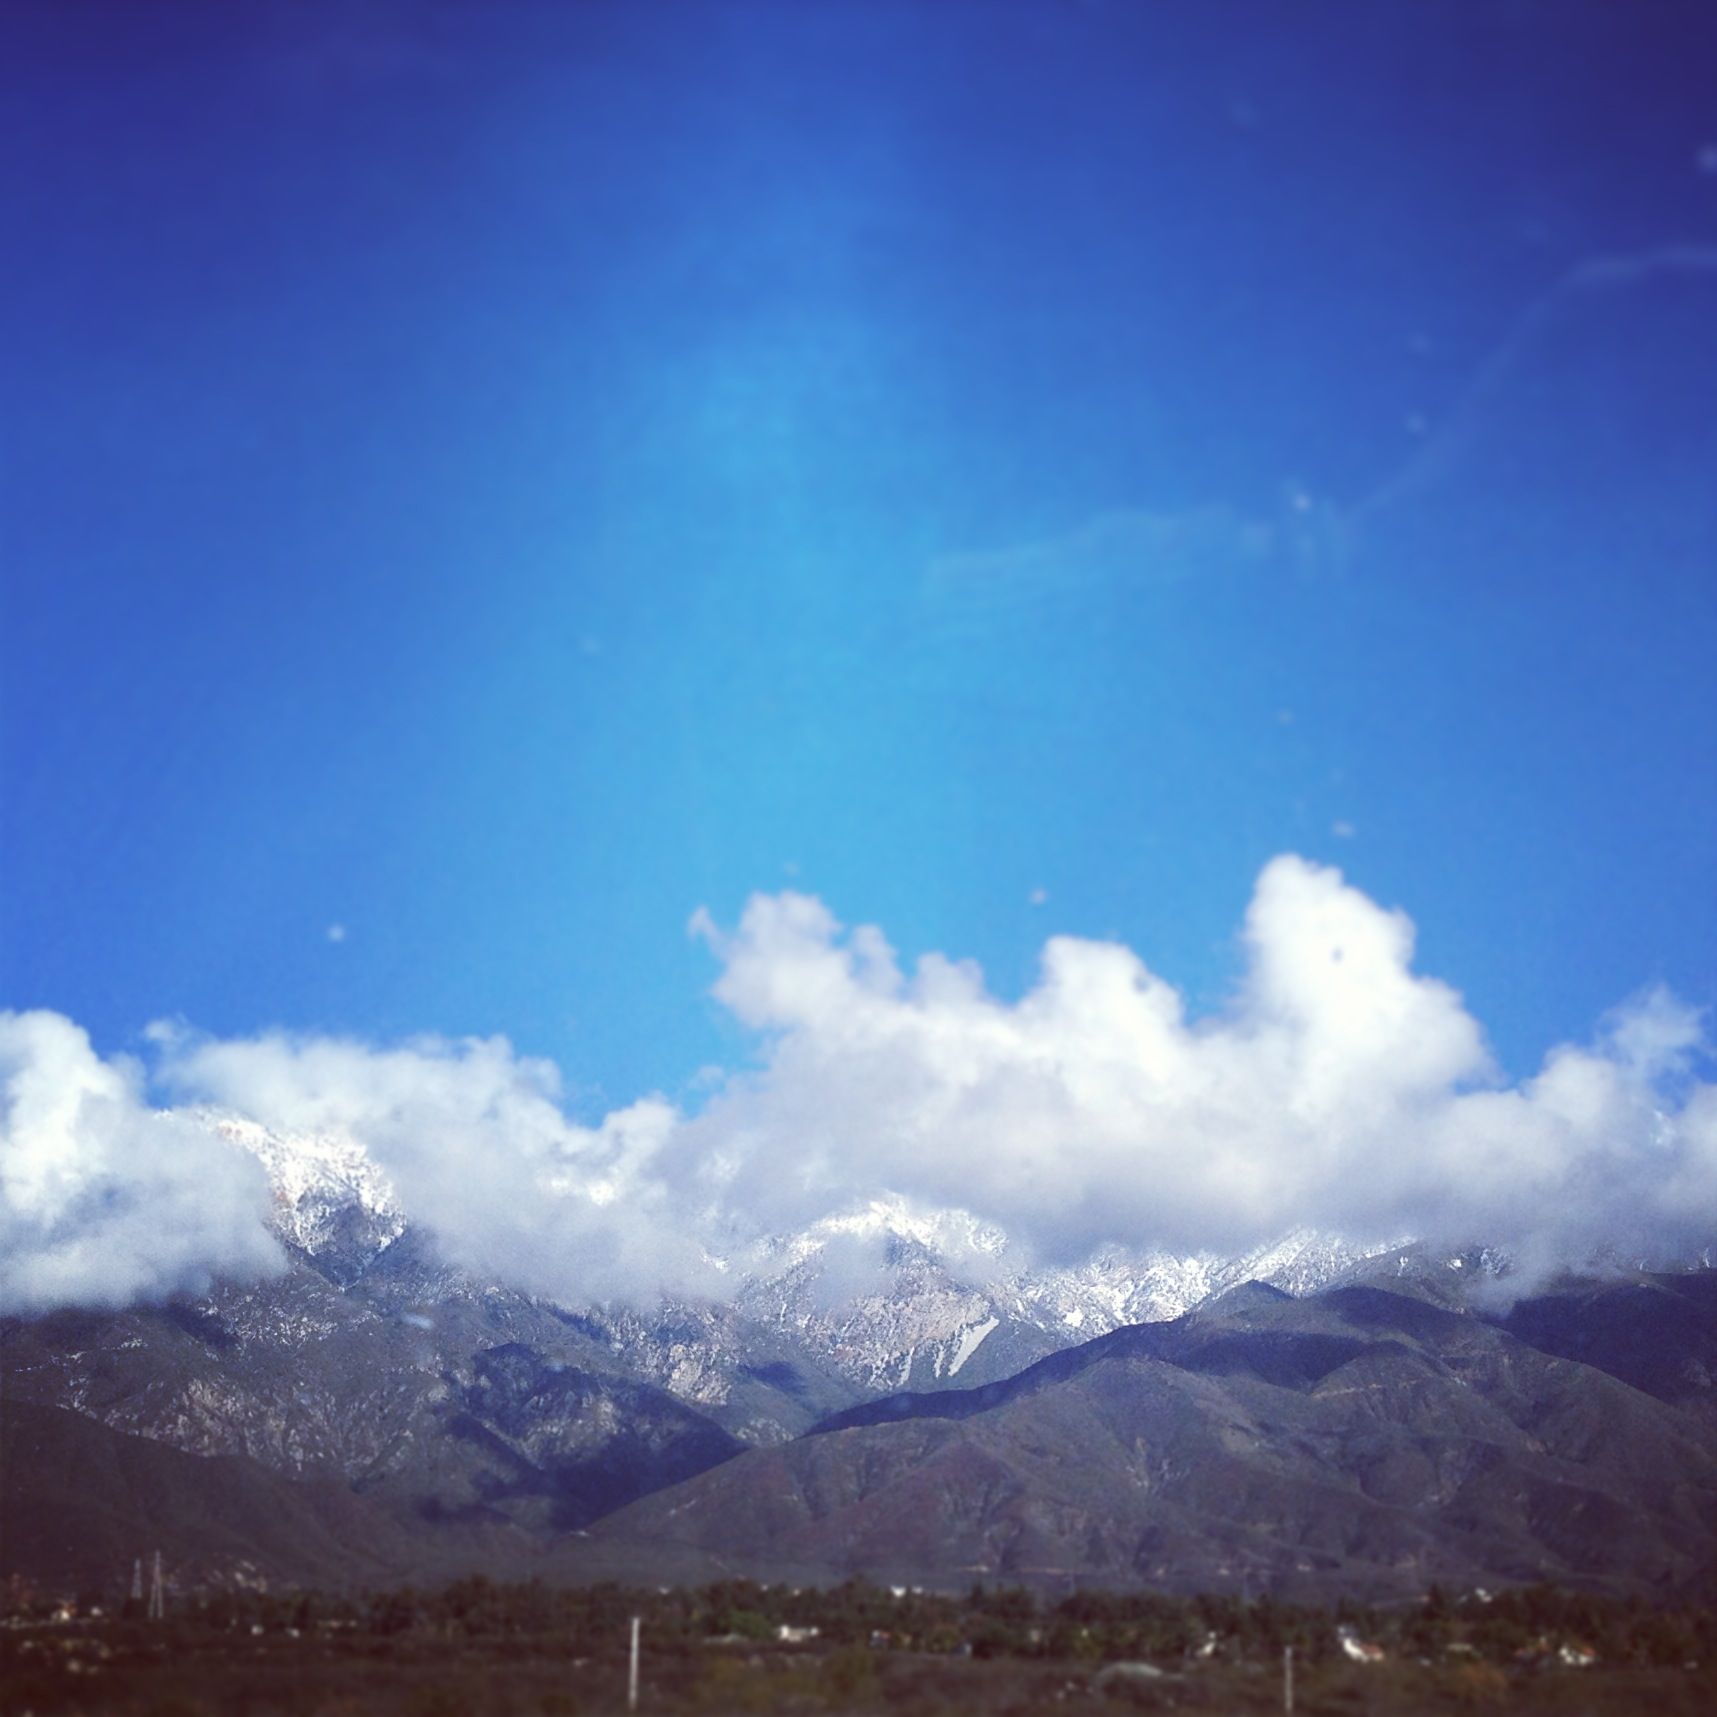 Snowy Mountains in Upland California